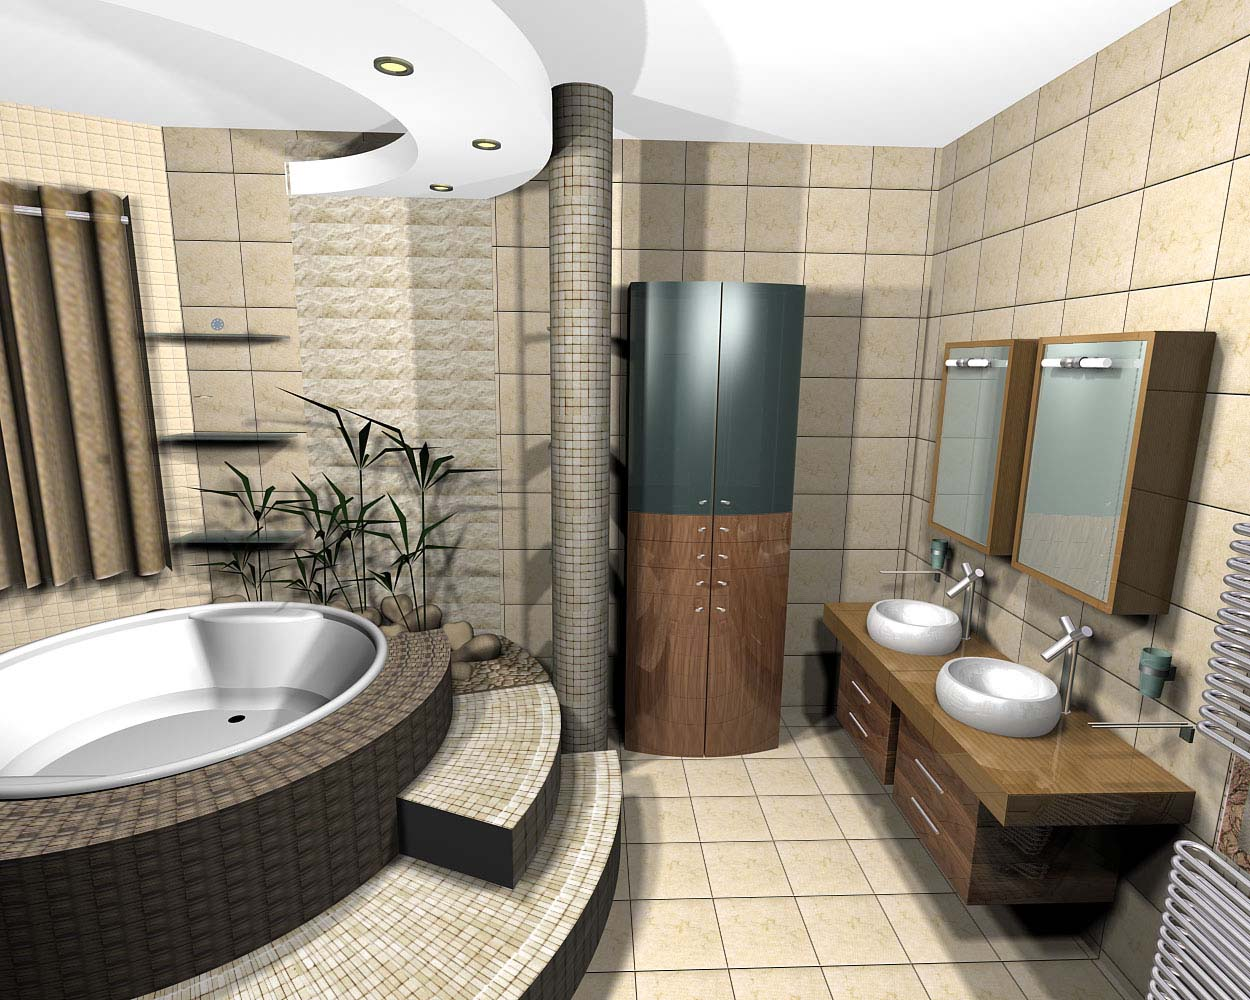 Interior Design Bathroom Ideas For exemplary Interior Design Small Bathroom  Small House Interior Photo